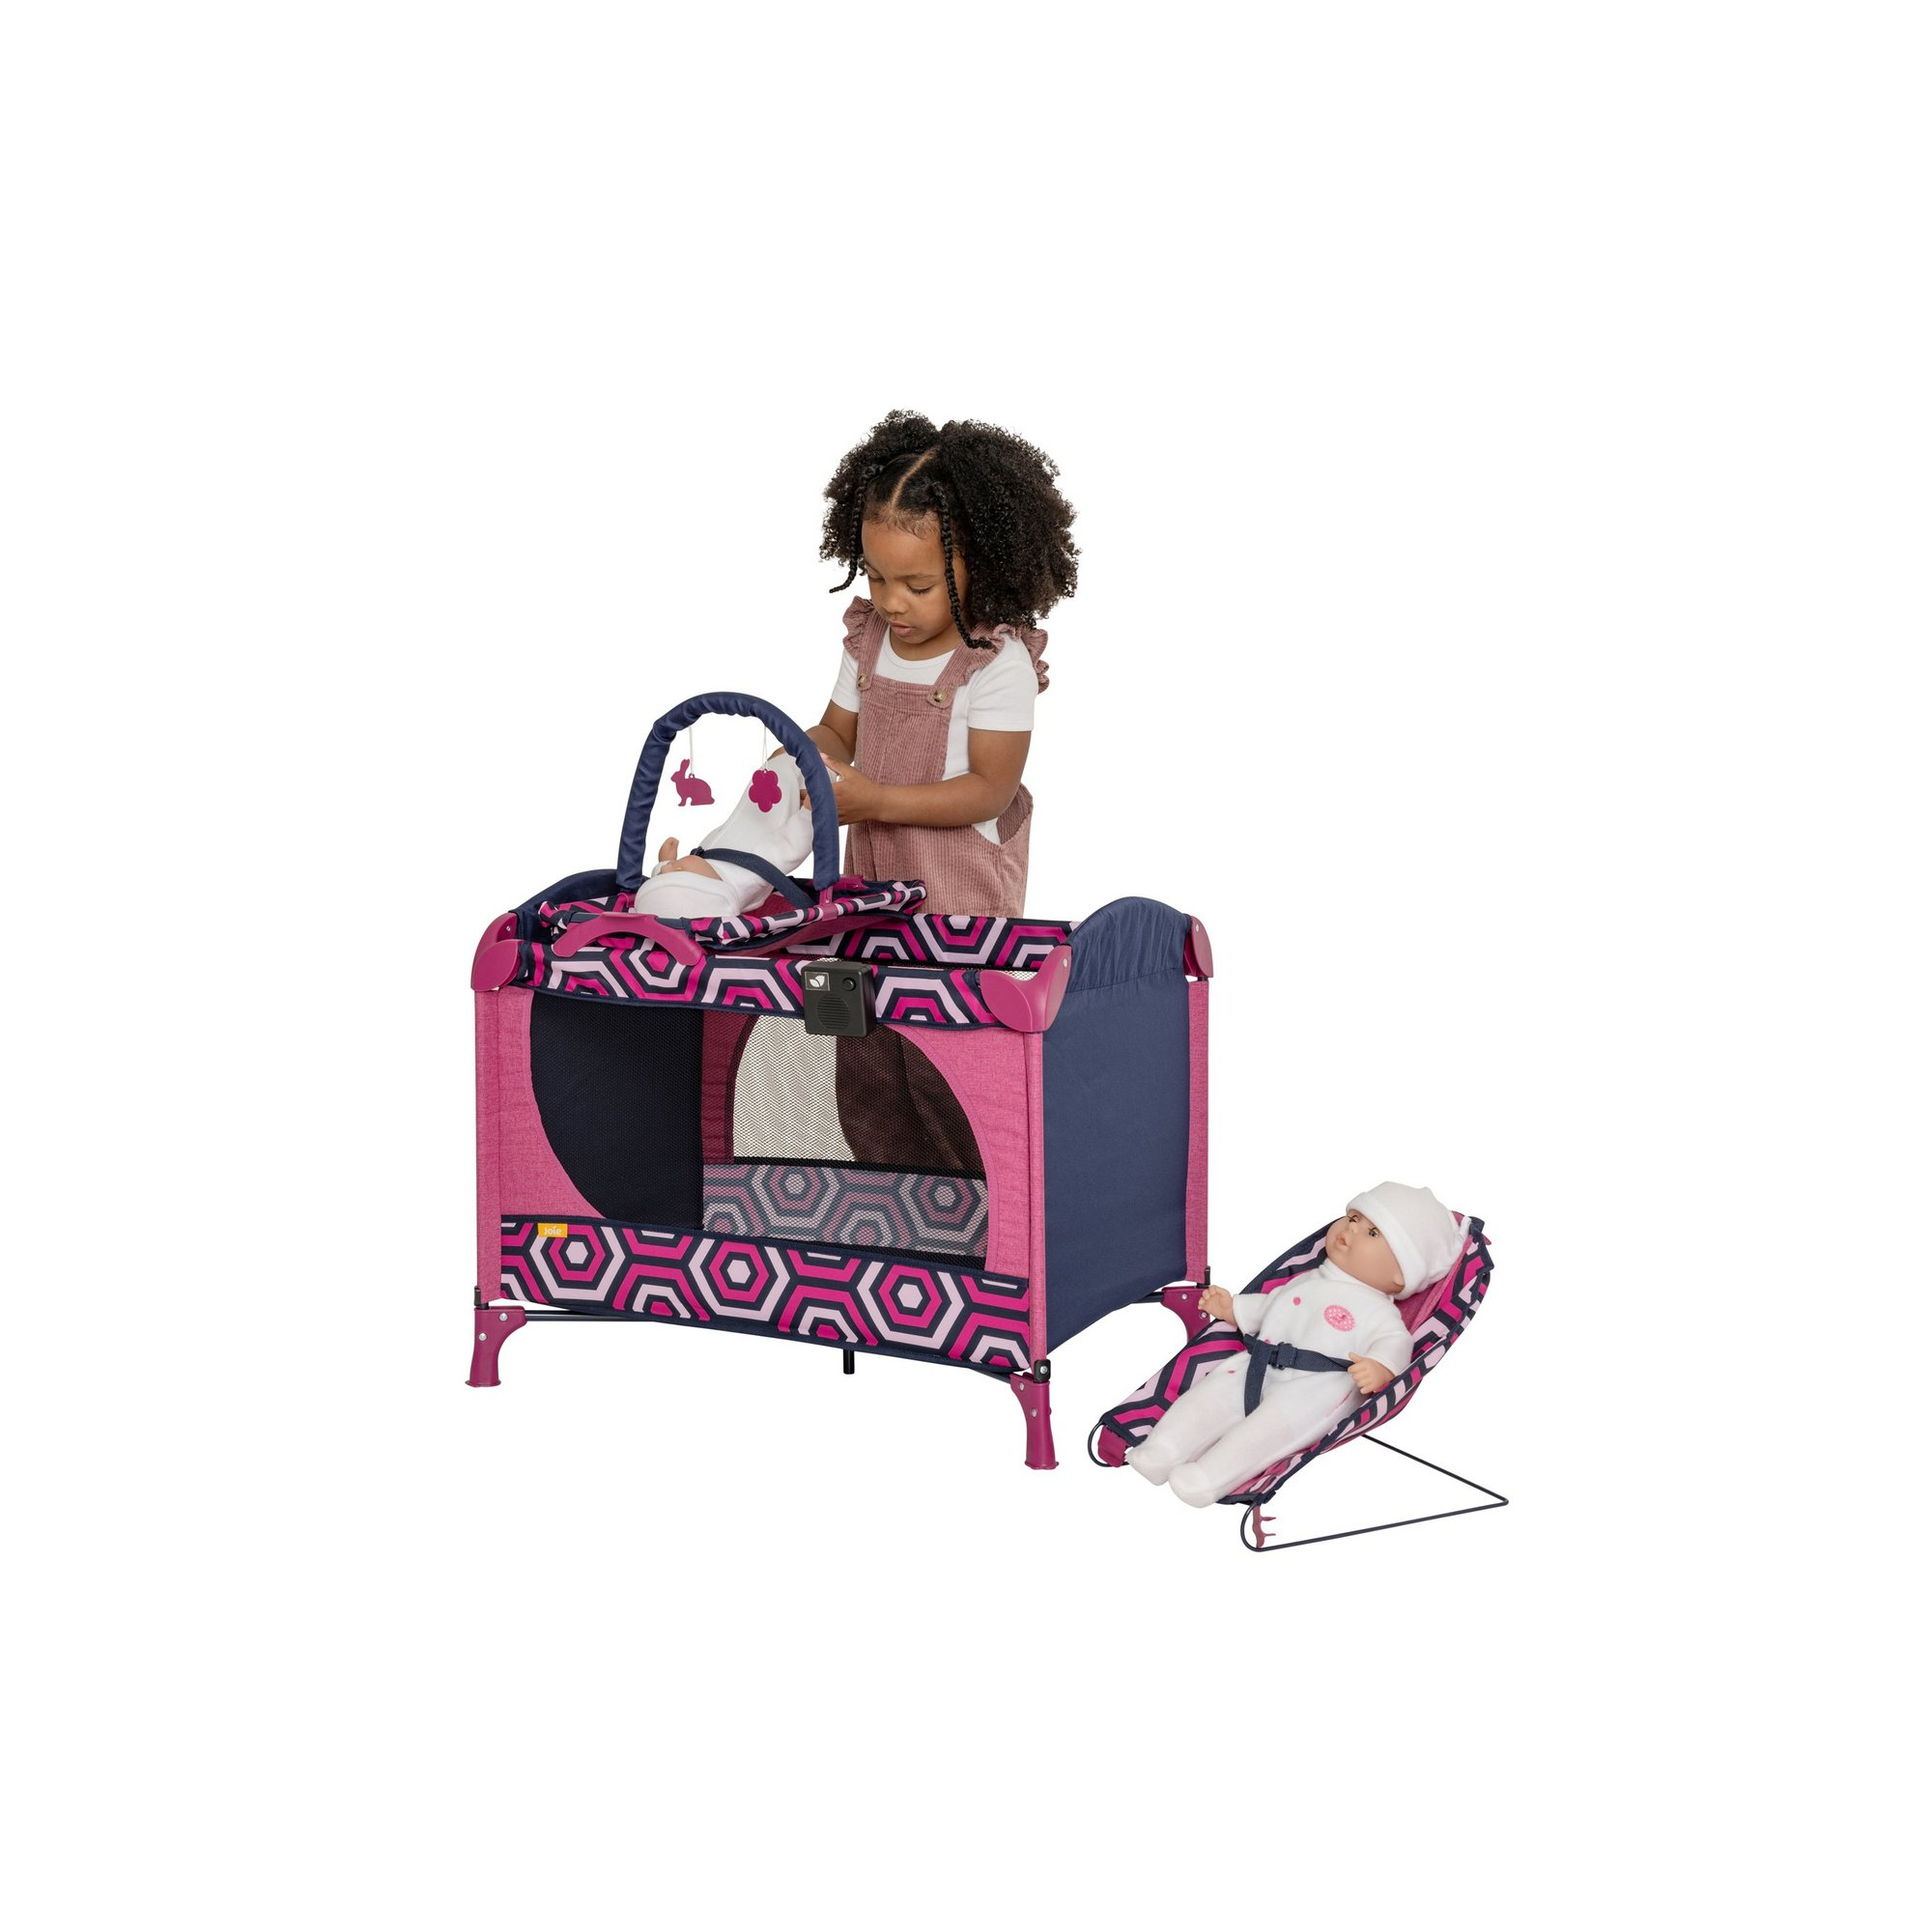 Image of Joie Junior Excursion Travel Cot